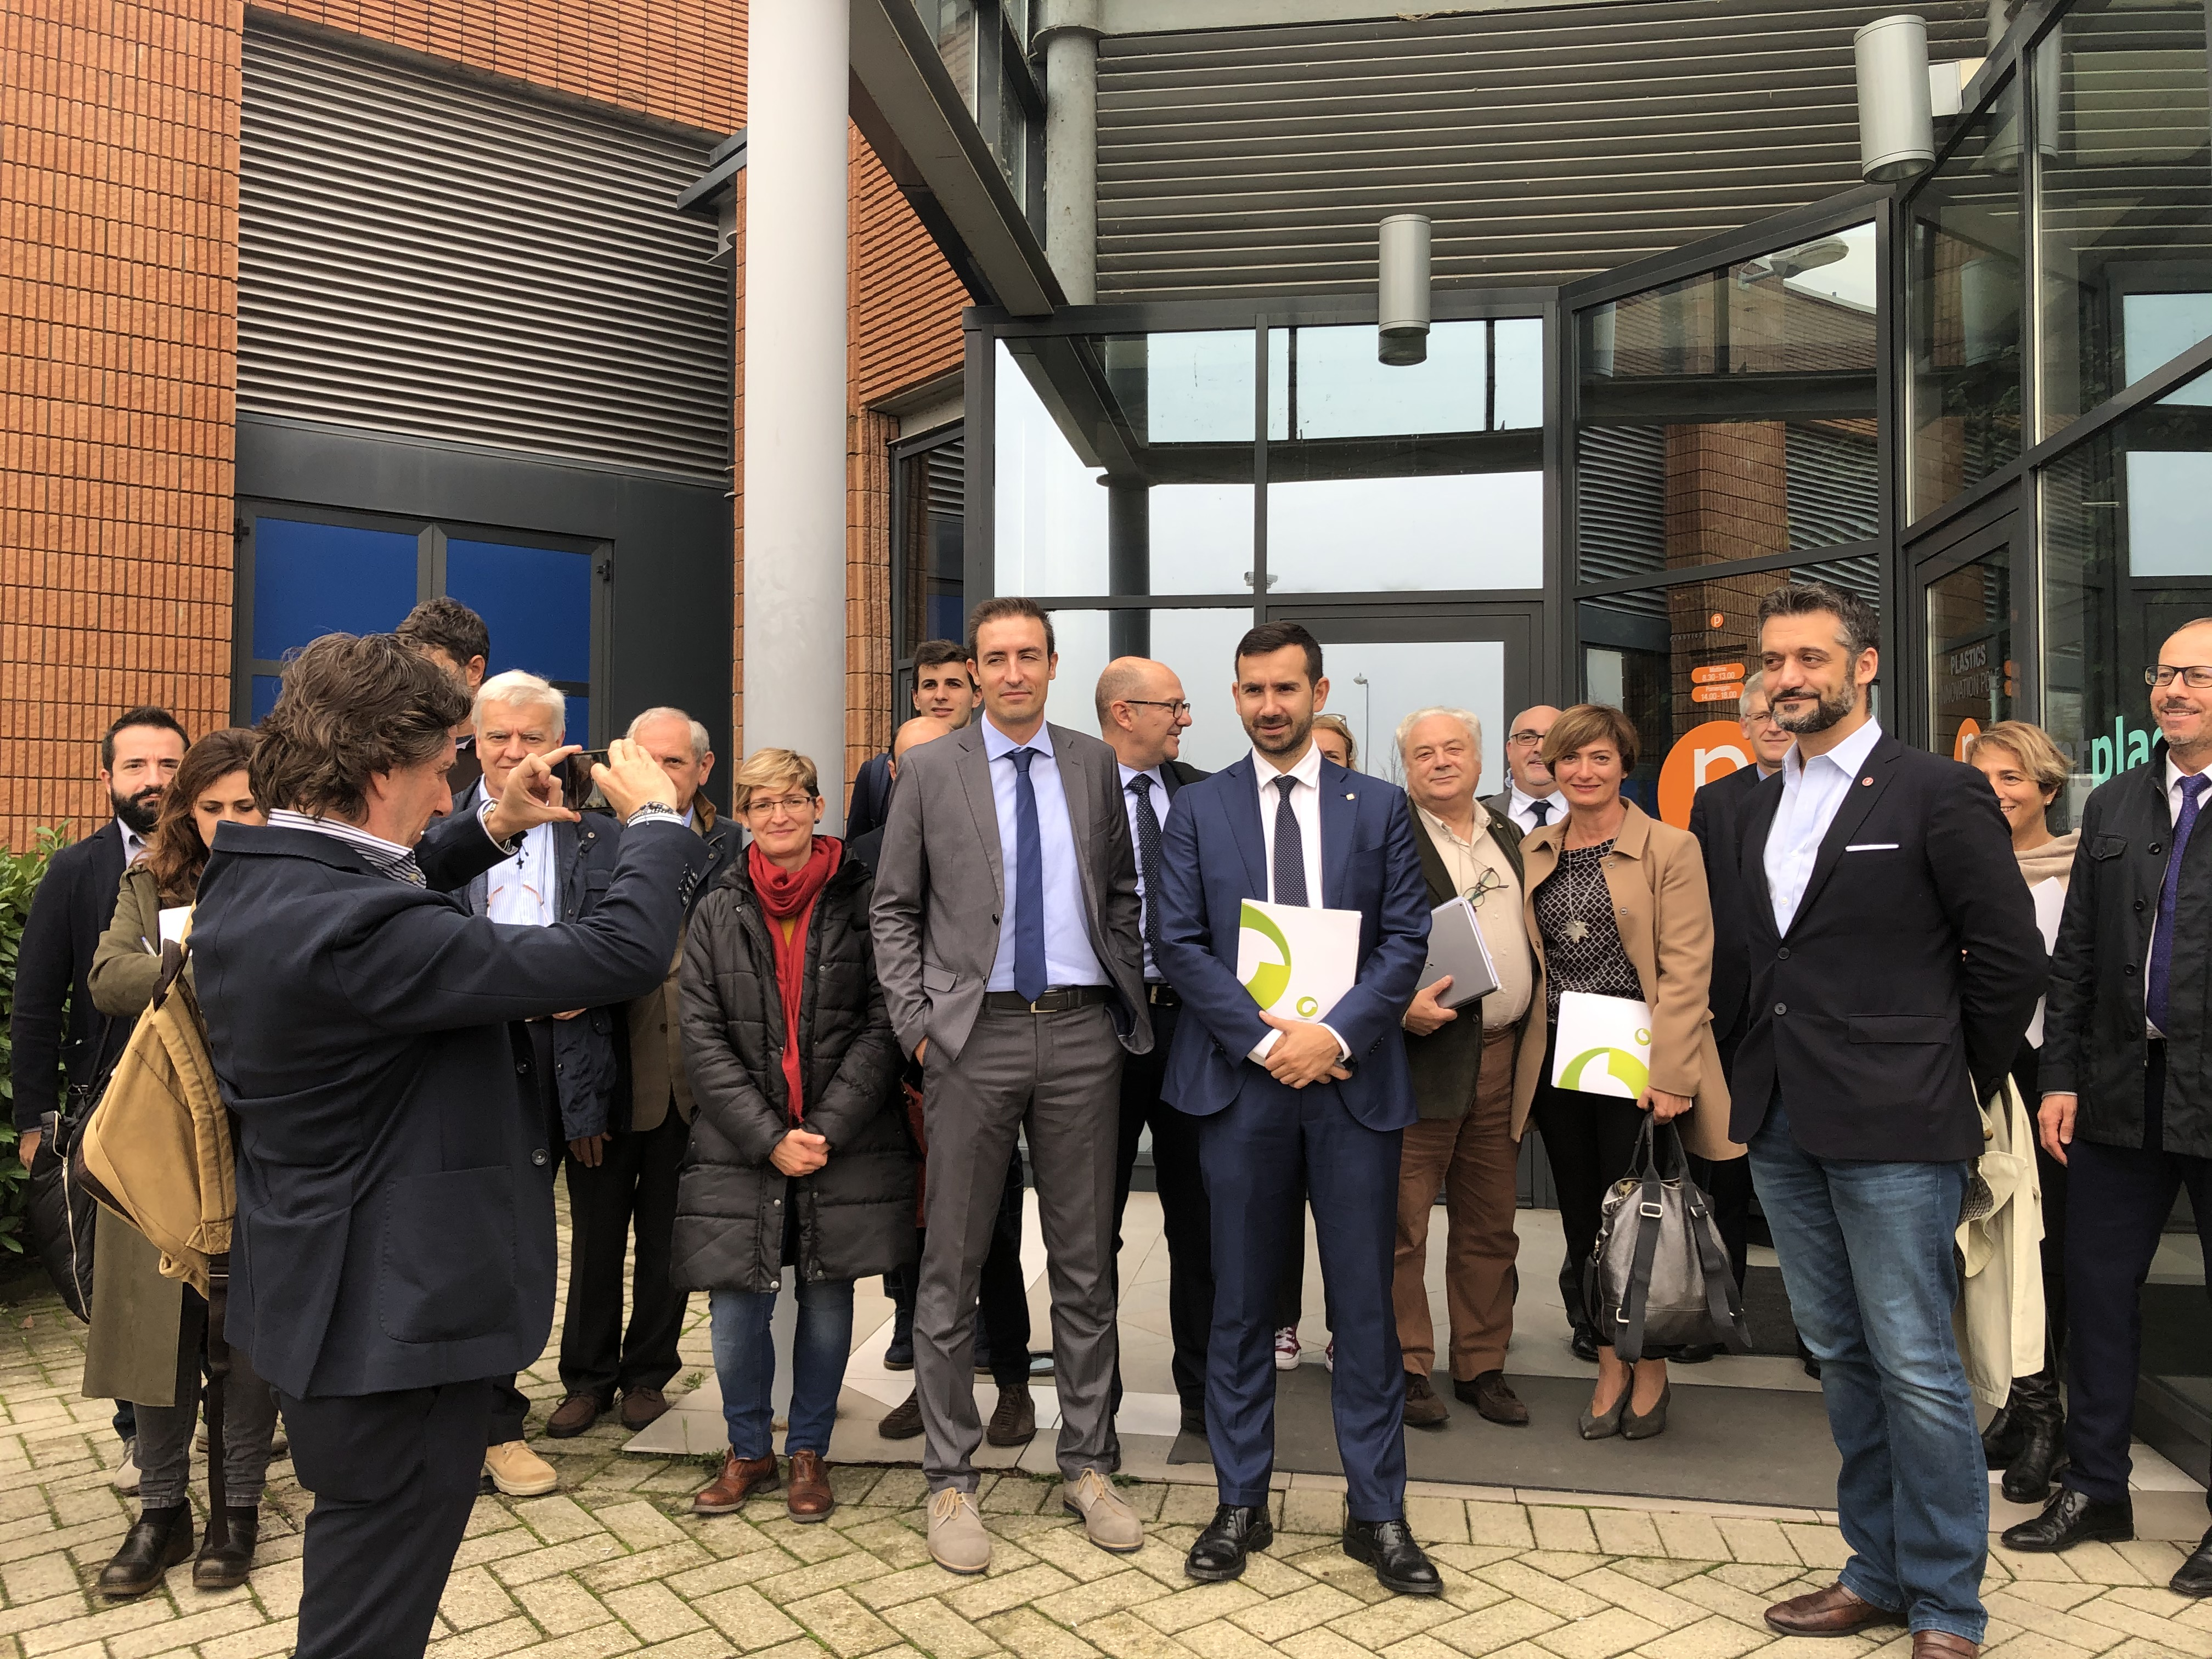 Visit by the Councilor for Innovation and the Environment of the Piedmont Region